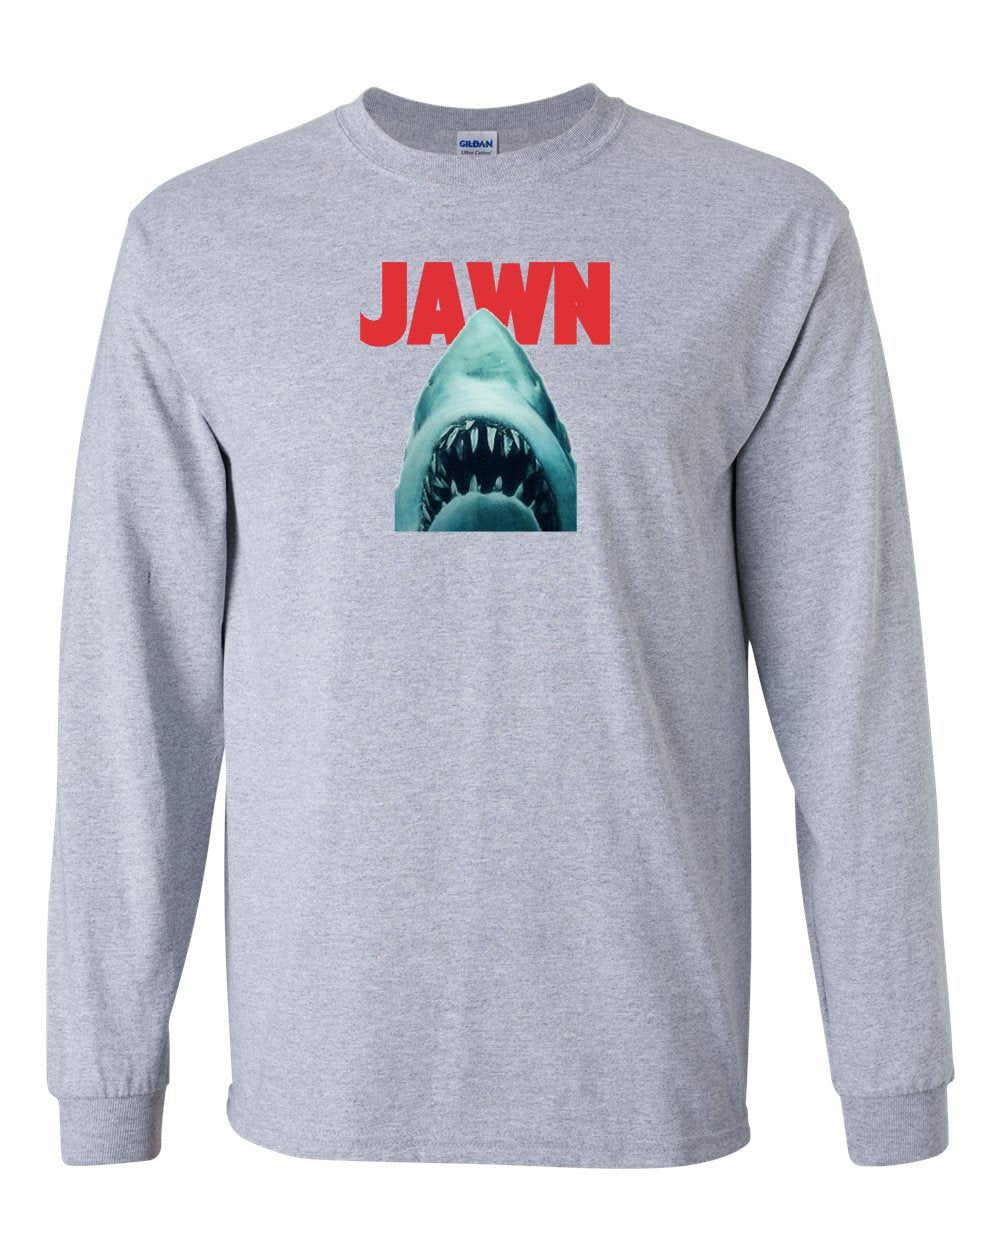 Jaws Jawn MENS Long Sleeve Heavy Cotton T-Shirt